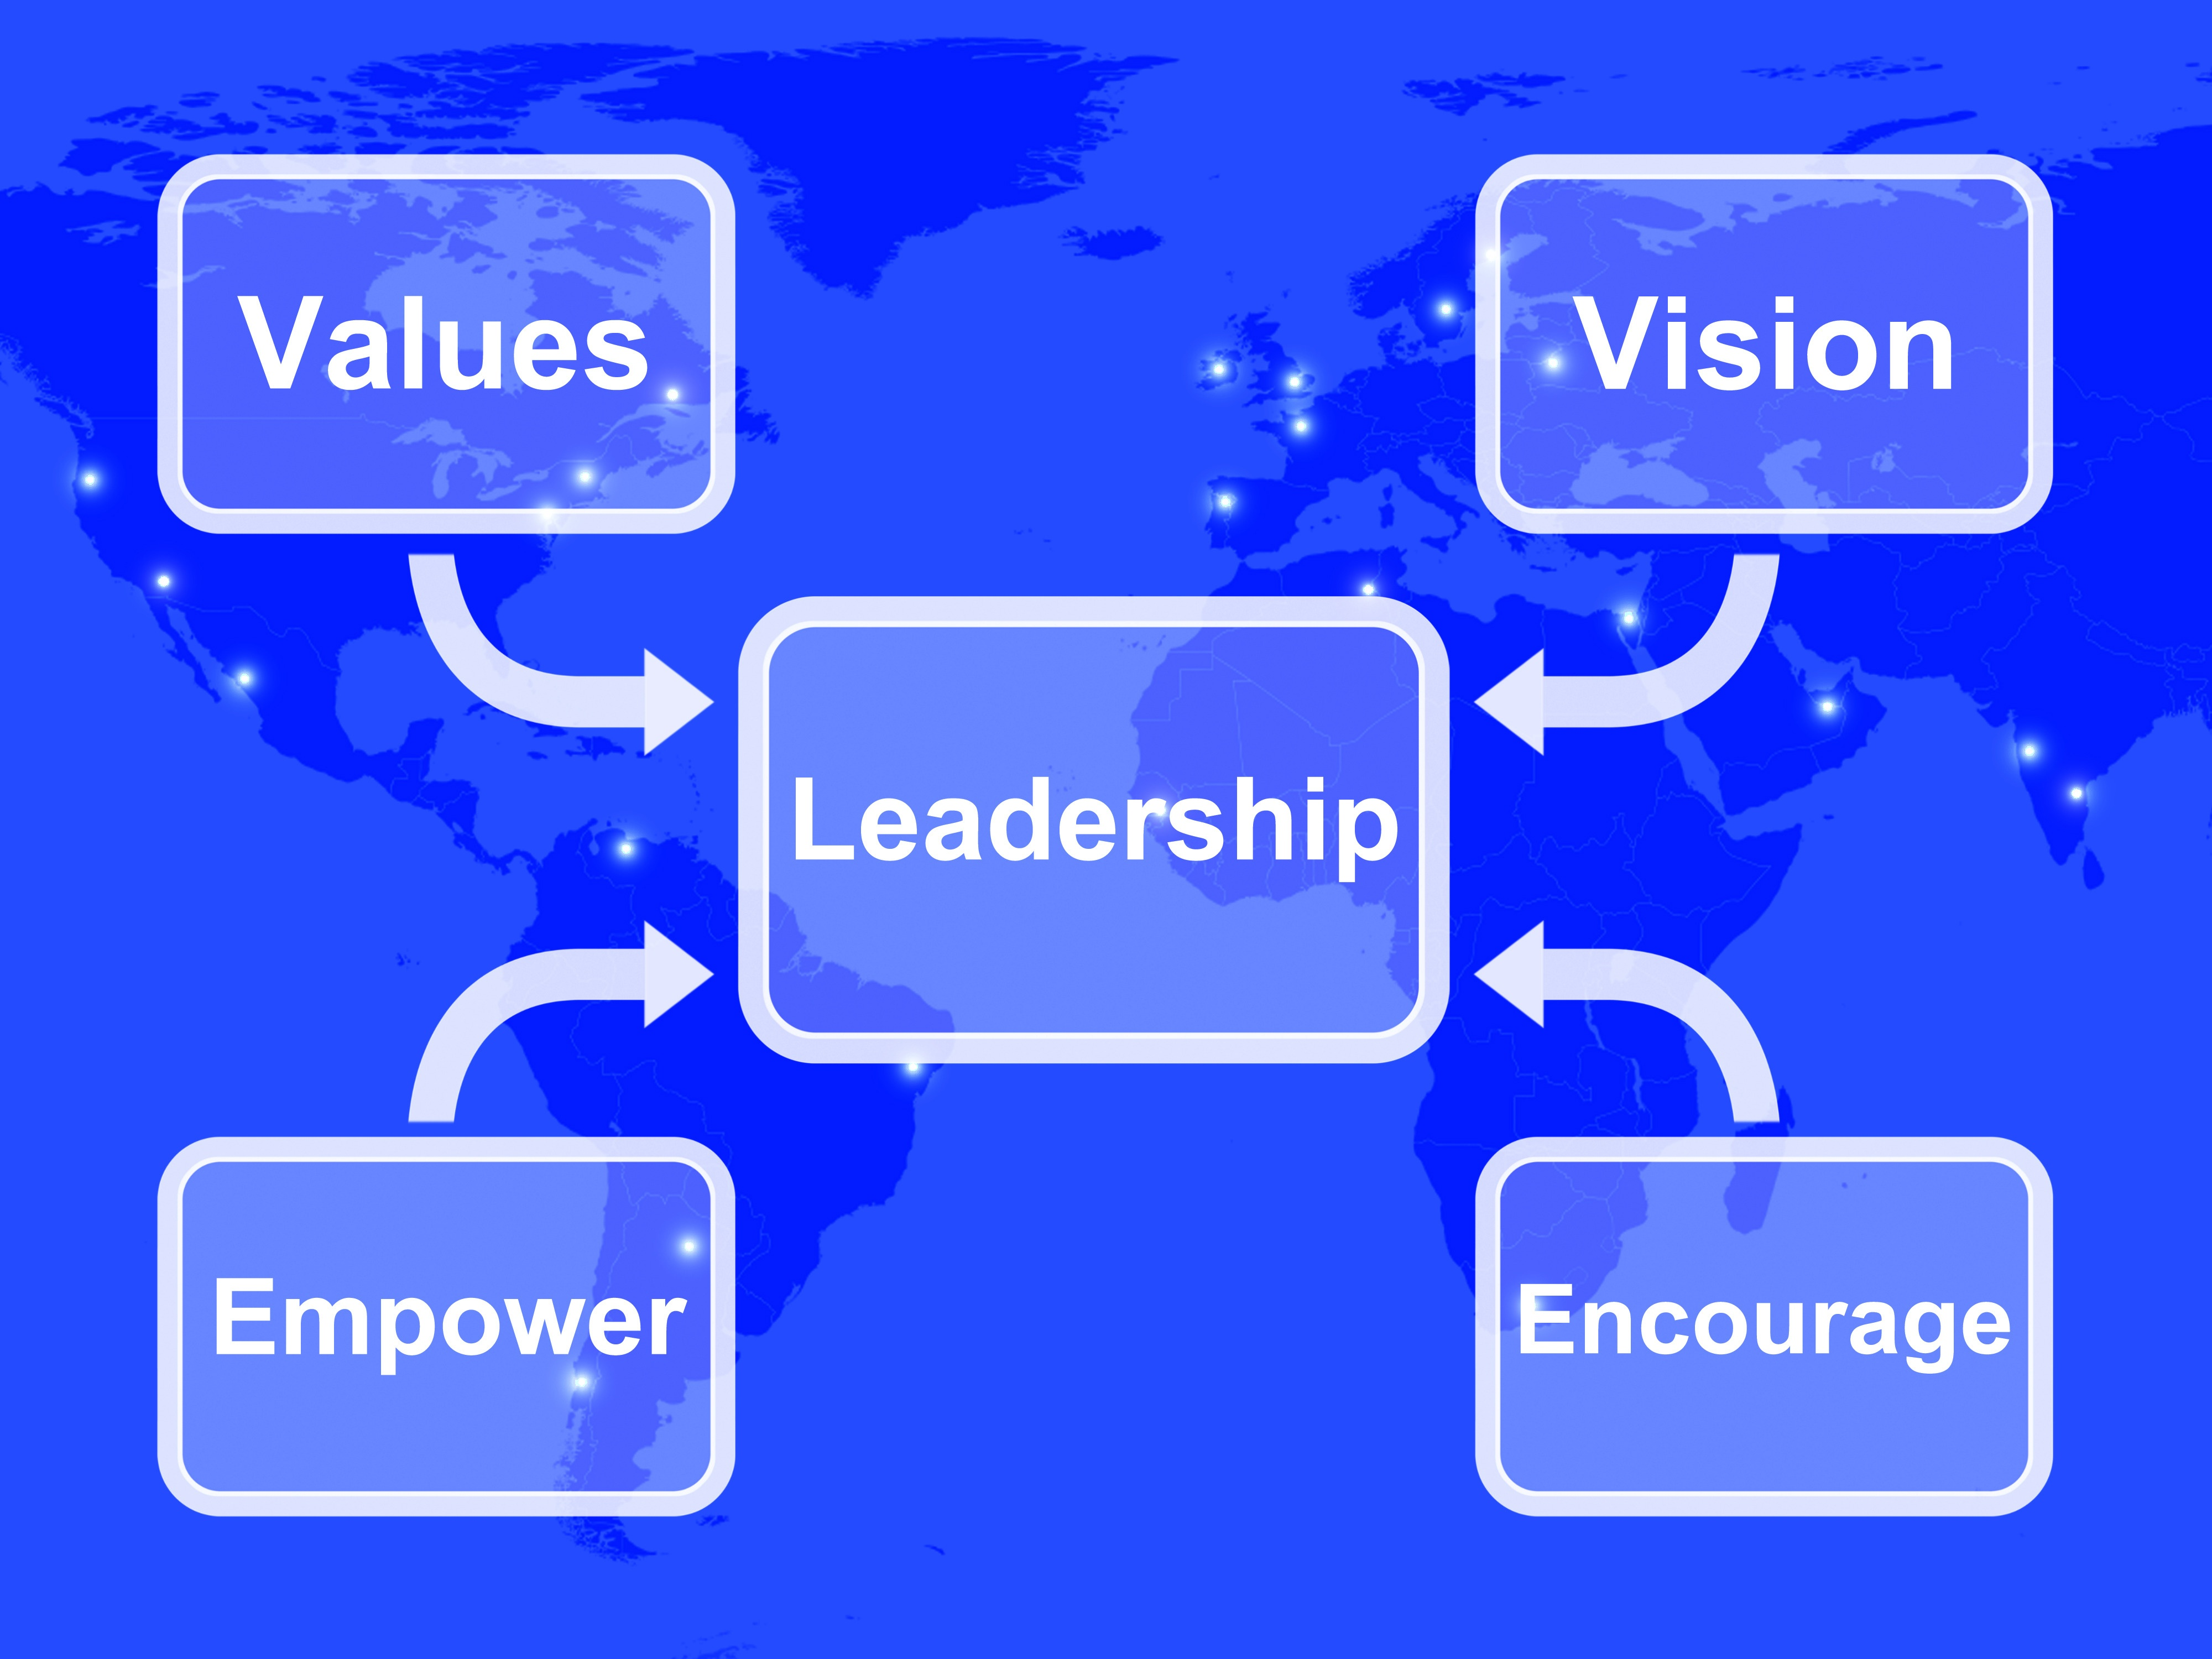 leadership-diagram-showing-vision-values-empower-and-encourage_GJhqKMw_